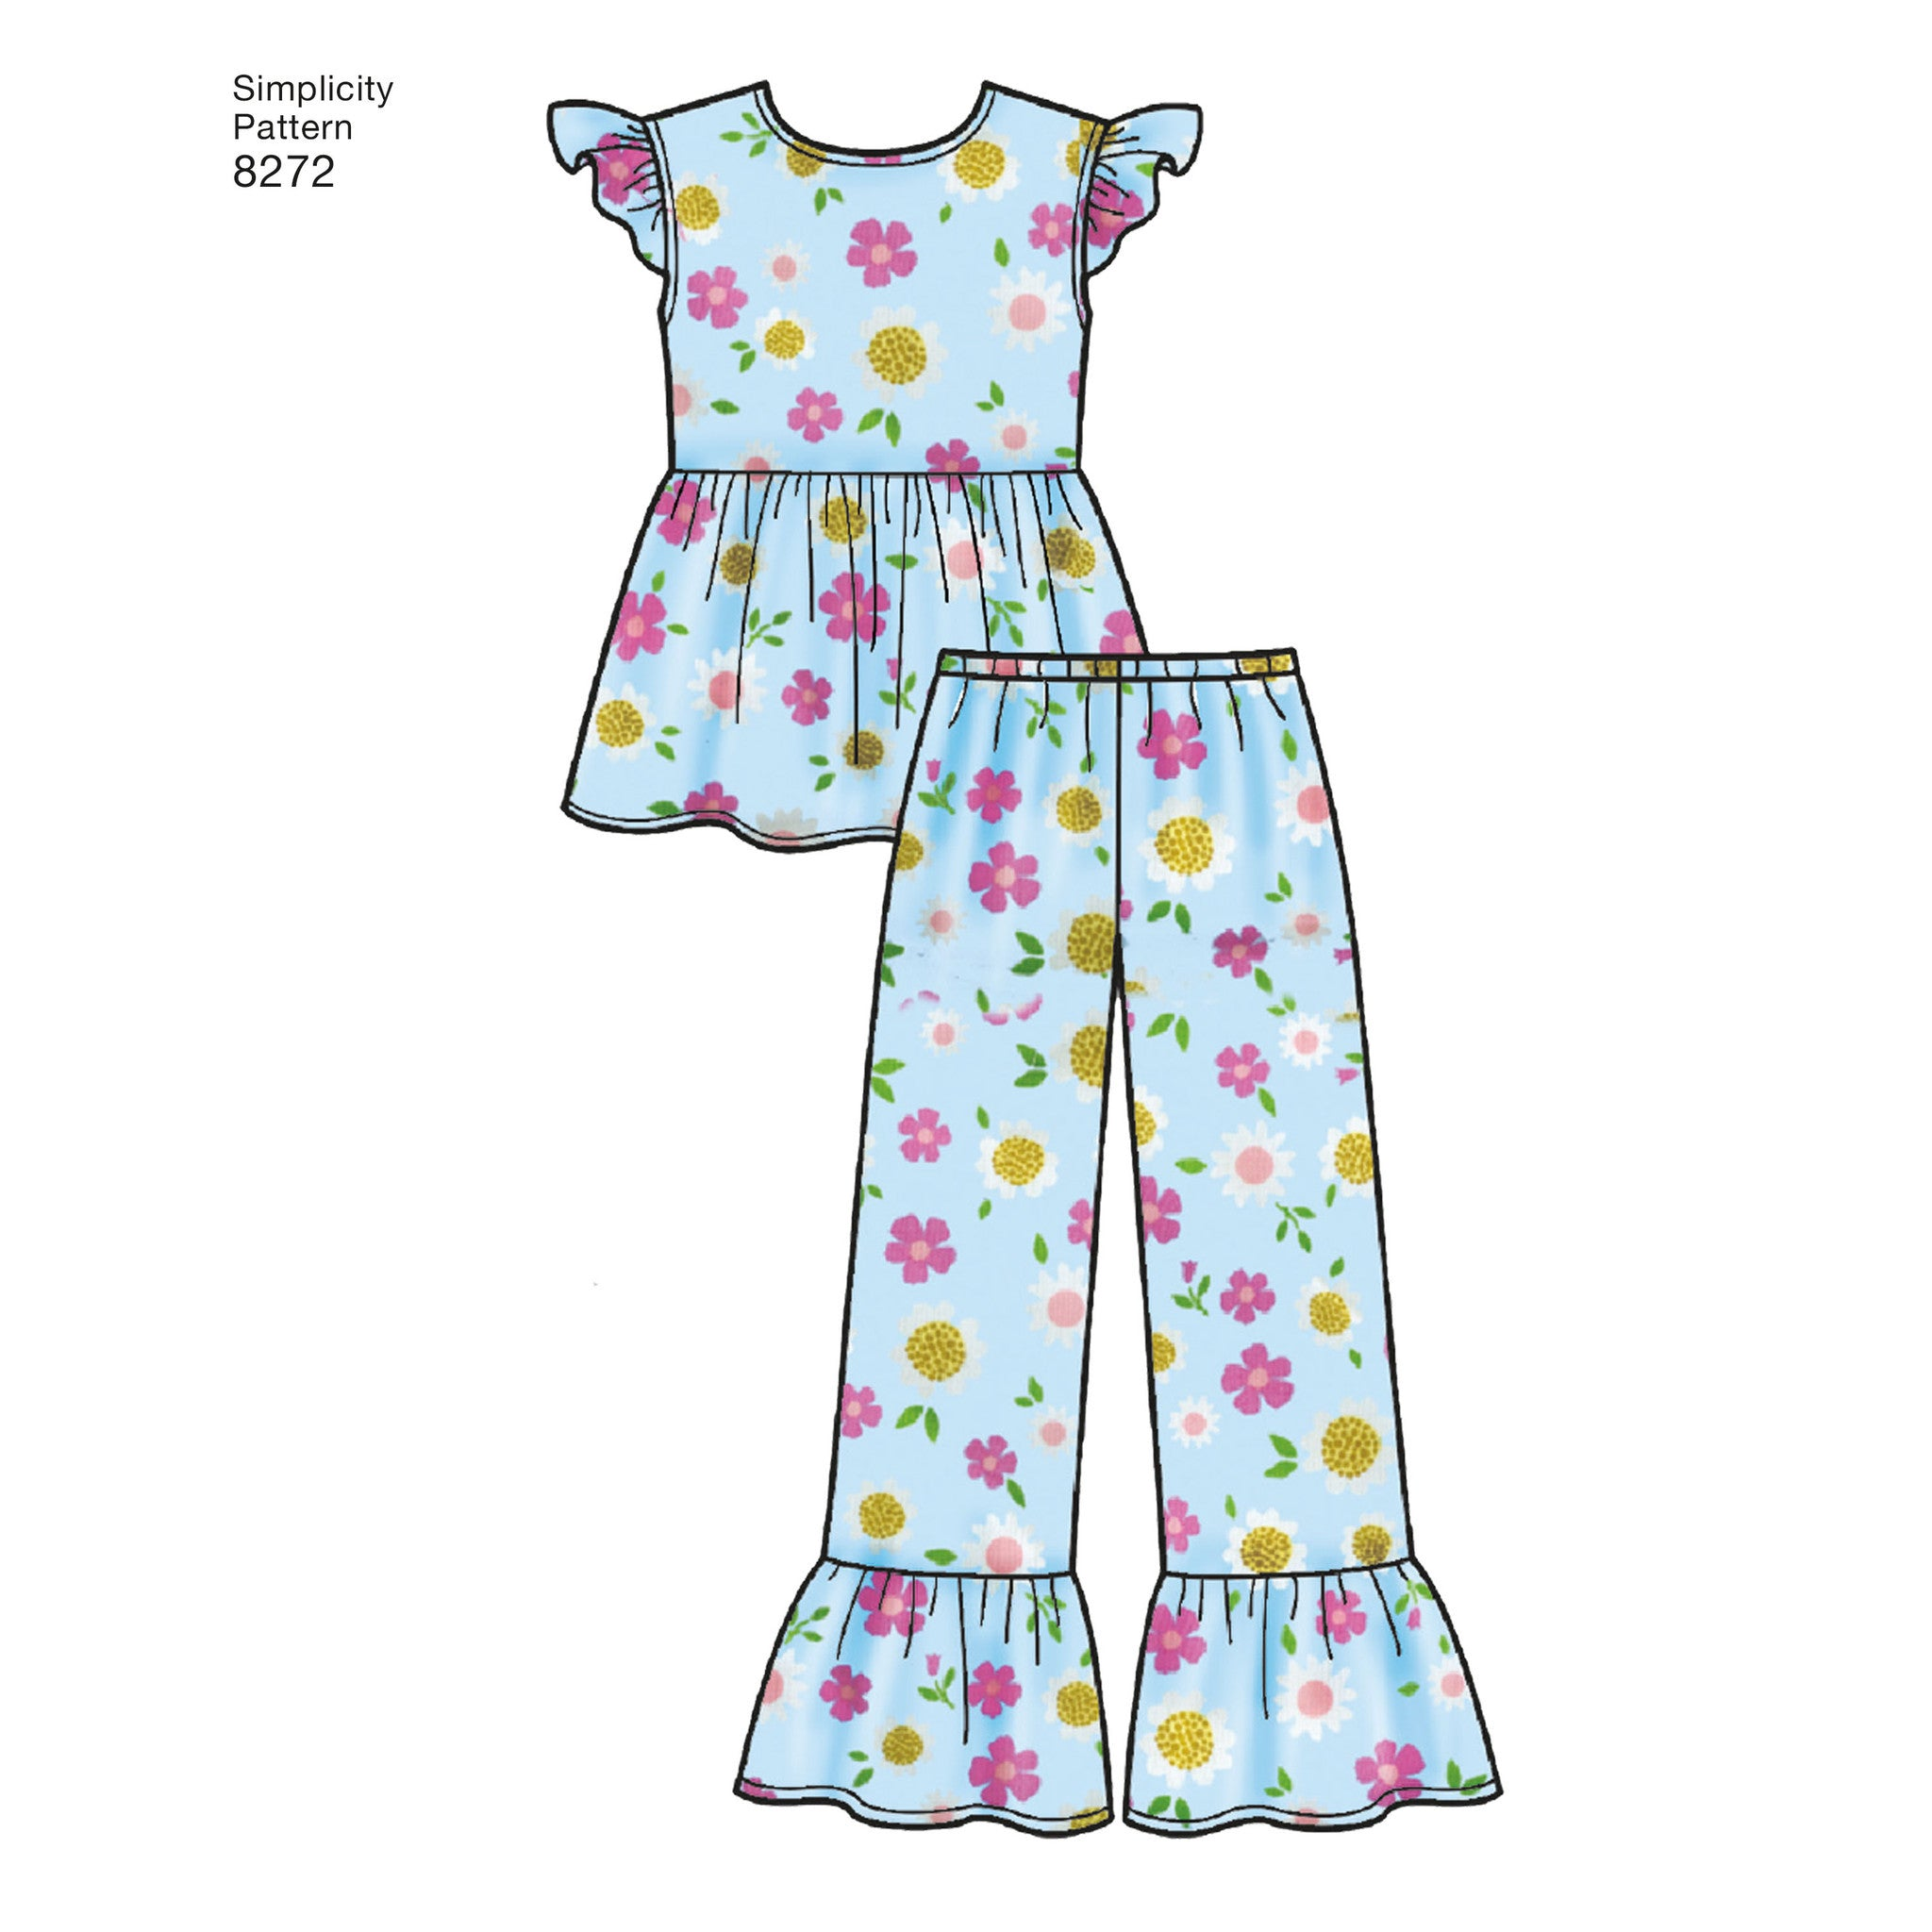 S8272 Child\'s and Girl\'s Sleepwear and Robe Simplicity Pattern ...